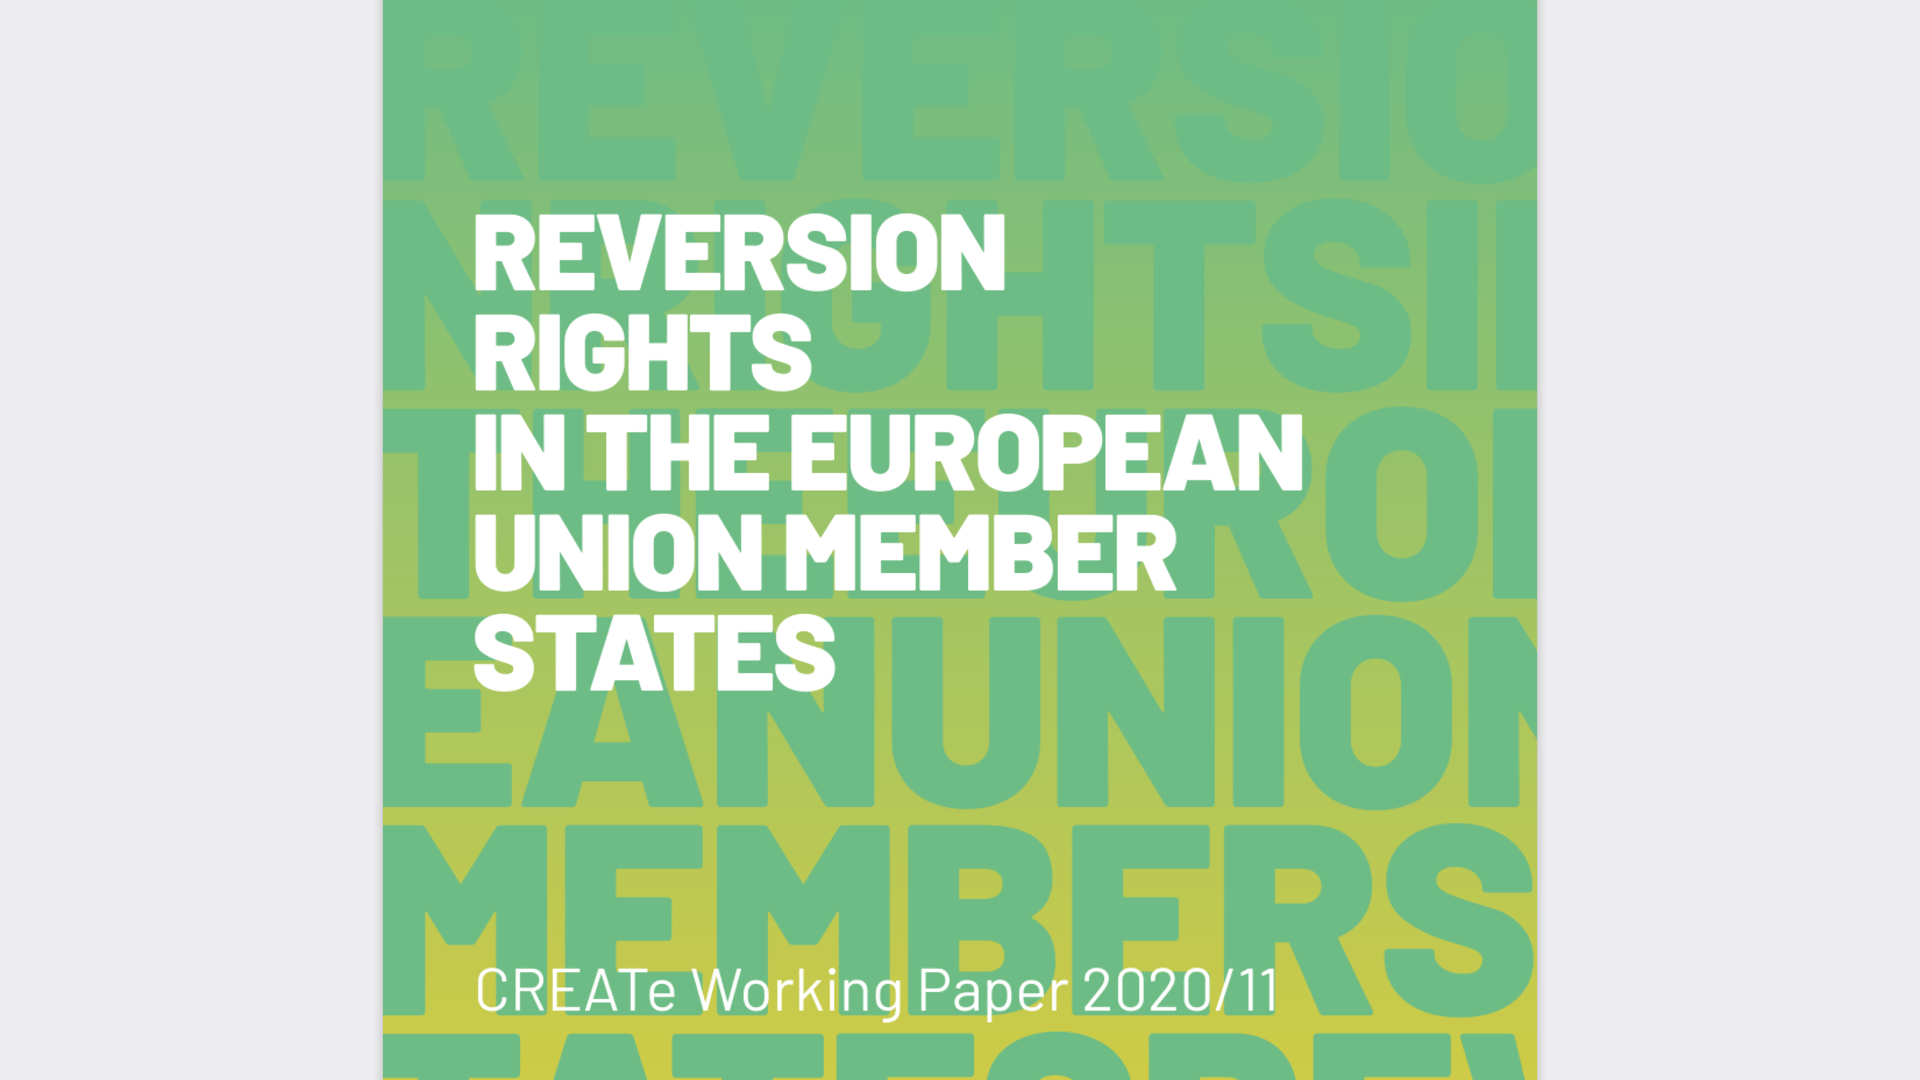 Fairness Rocks News Reversion rights in the European Union Member States